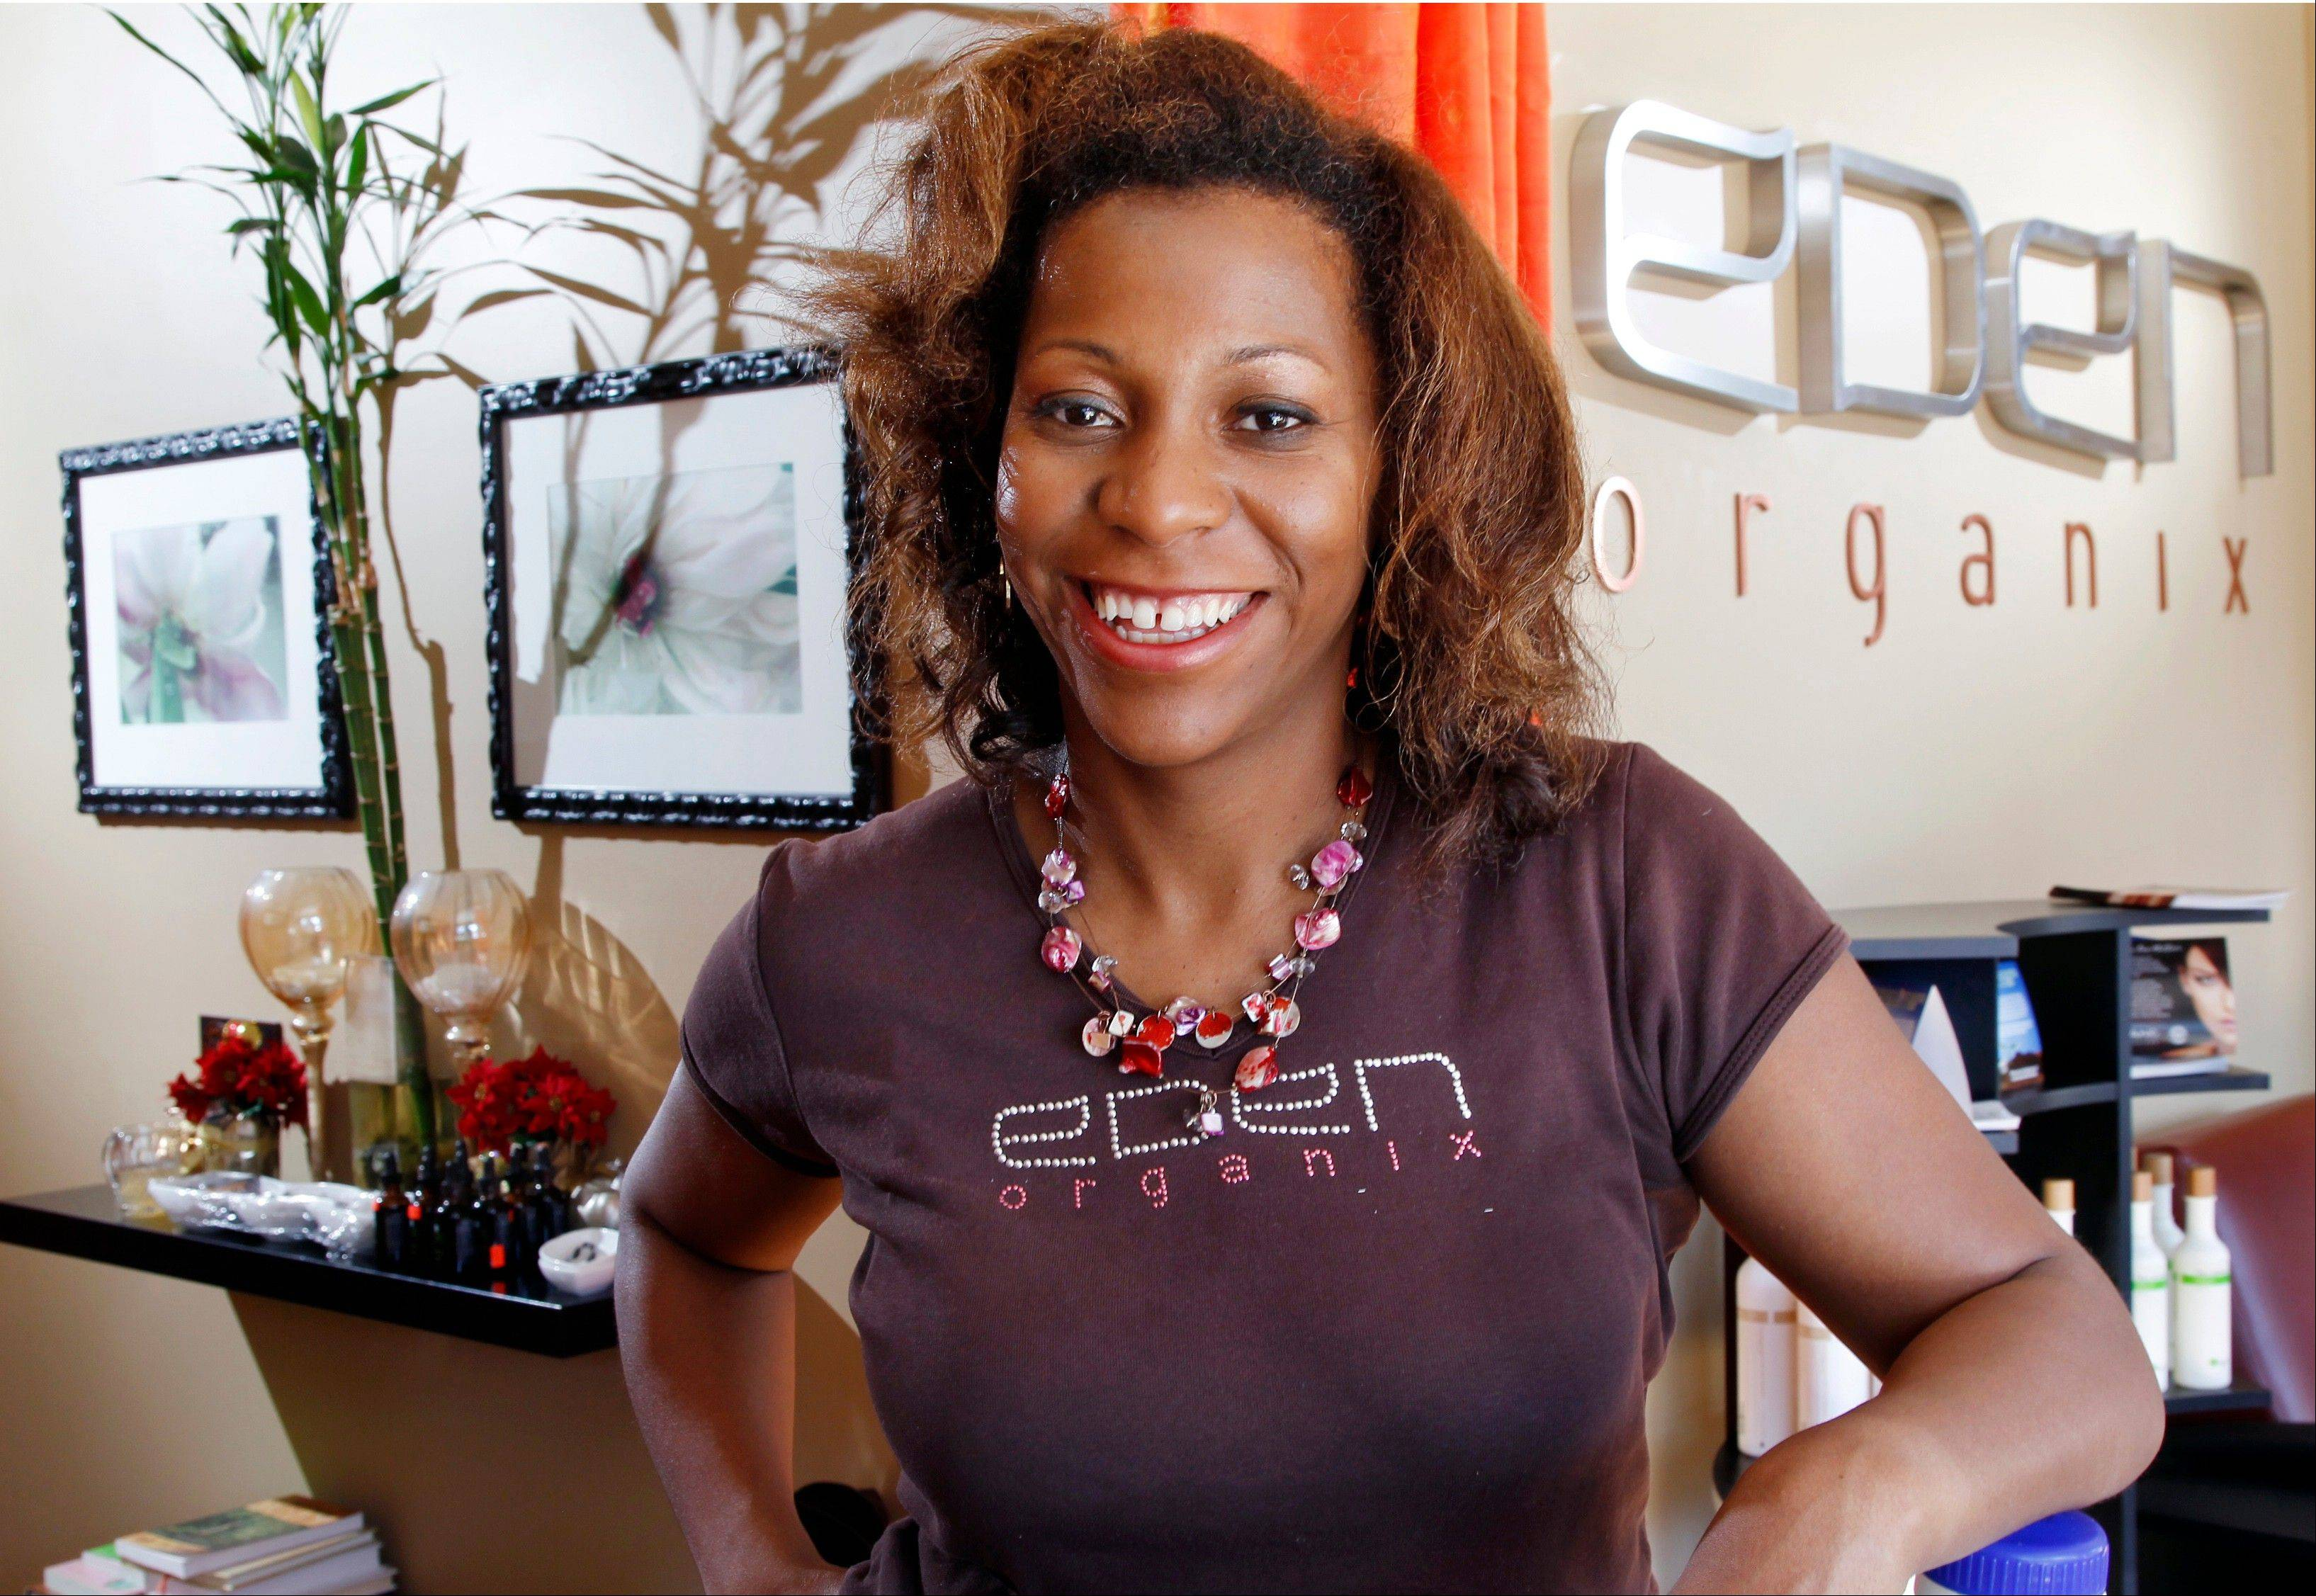 Eden Organix spa owner Valerie Mason-Robinson poses for a photograph in her spa in Highland Park, N.J.